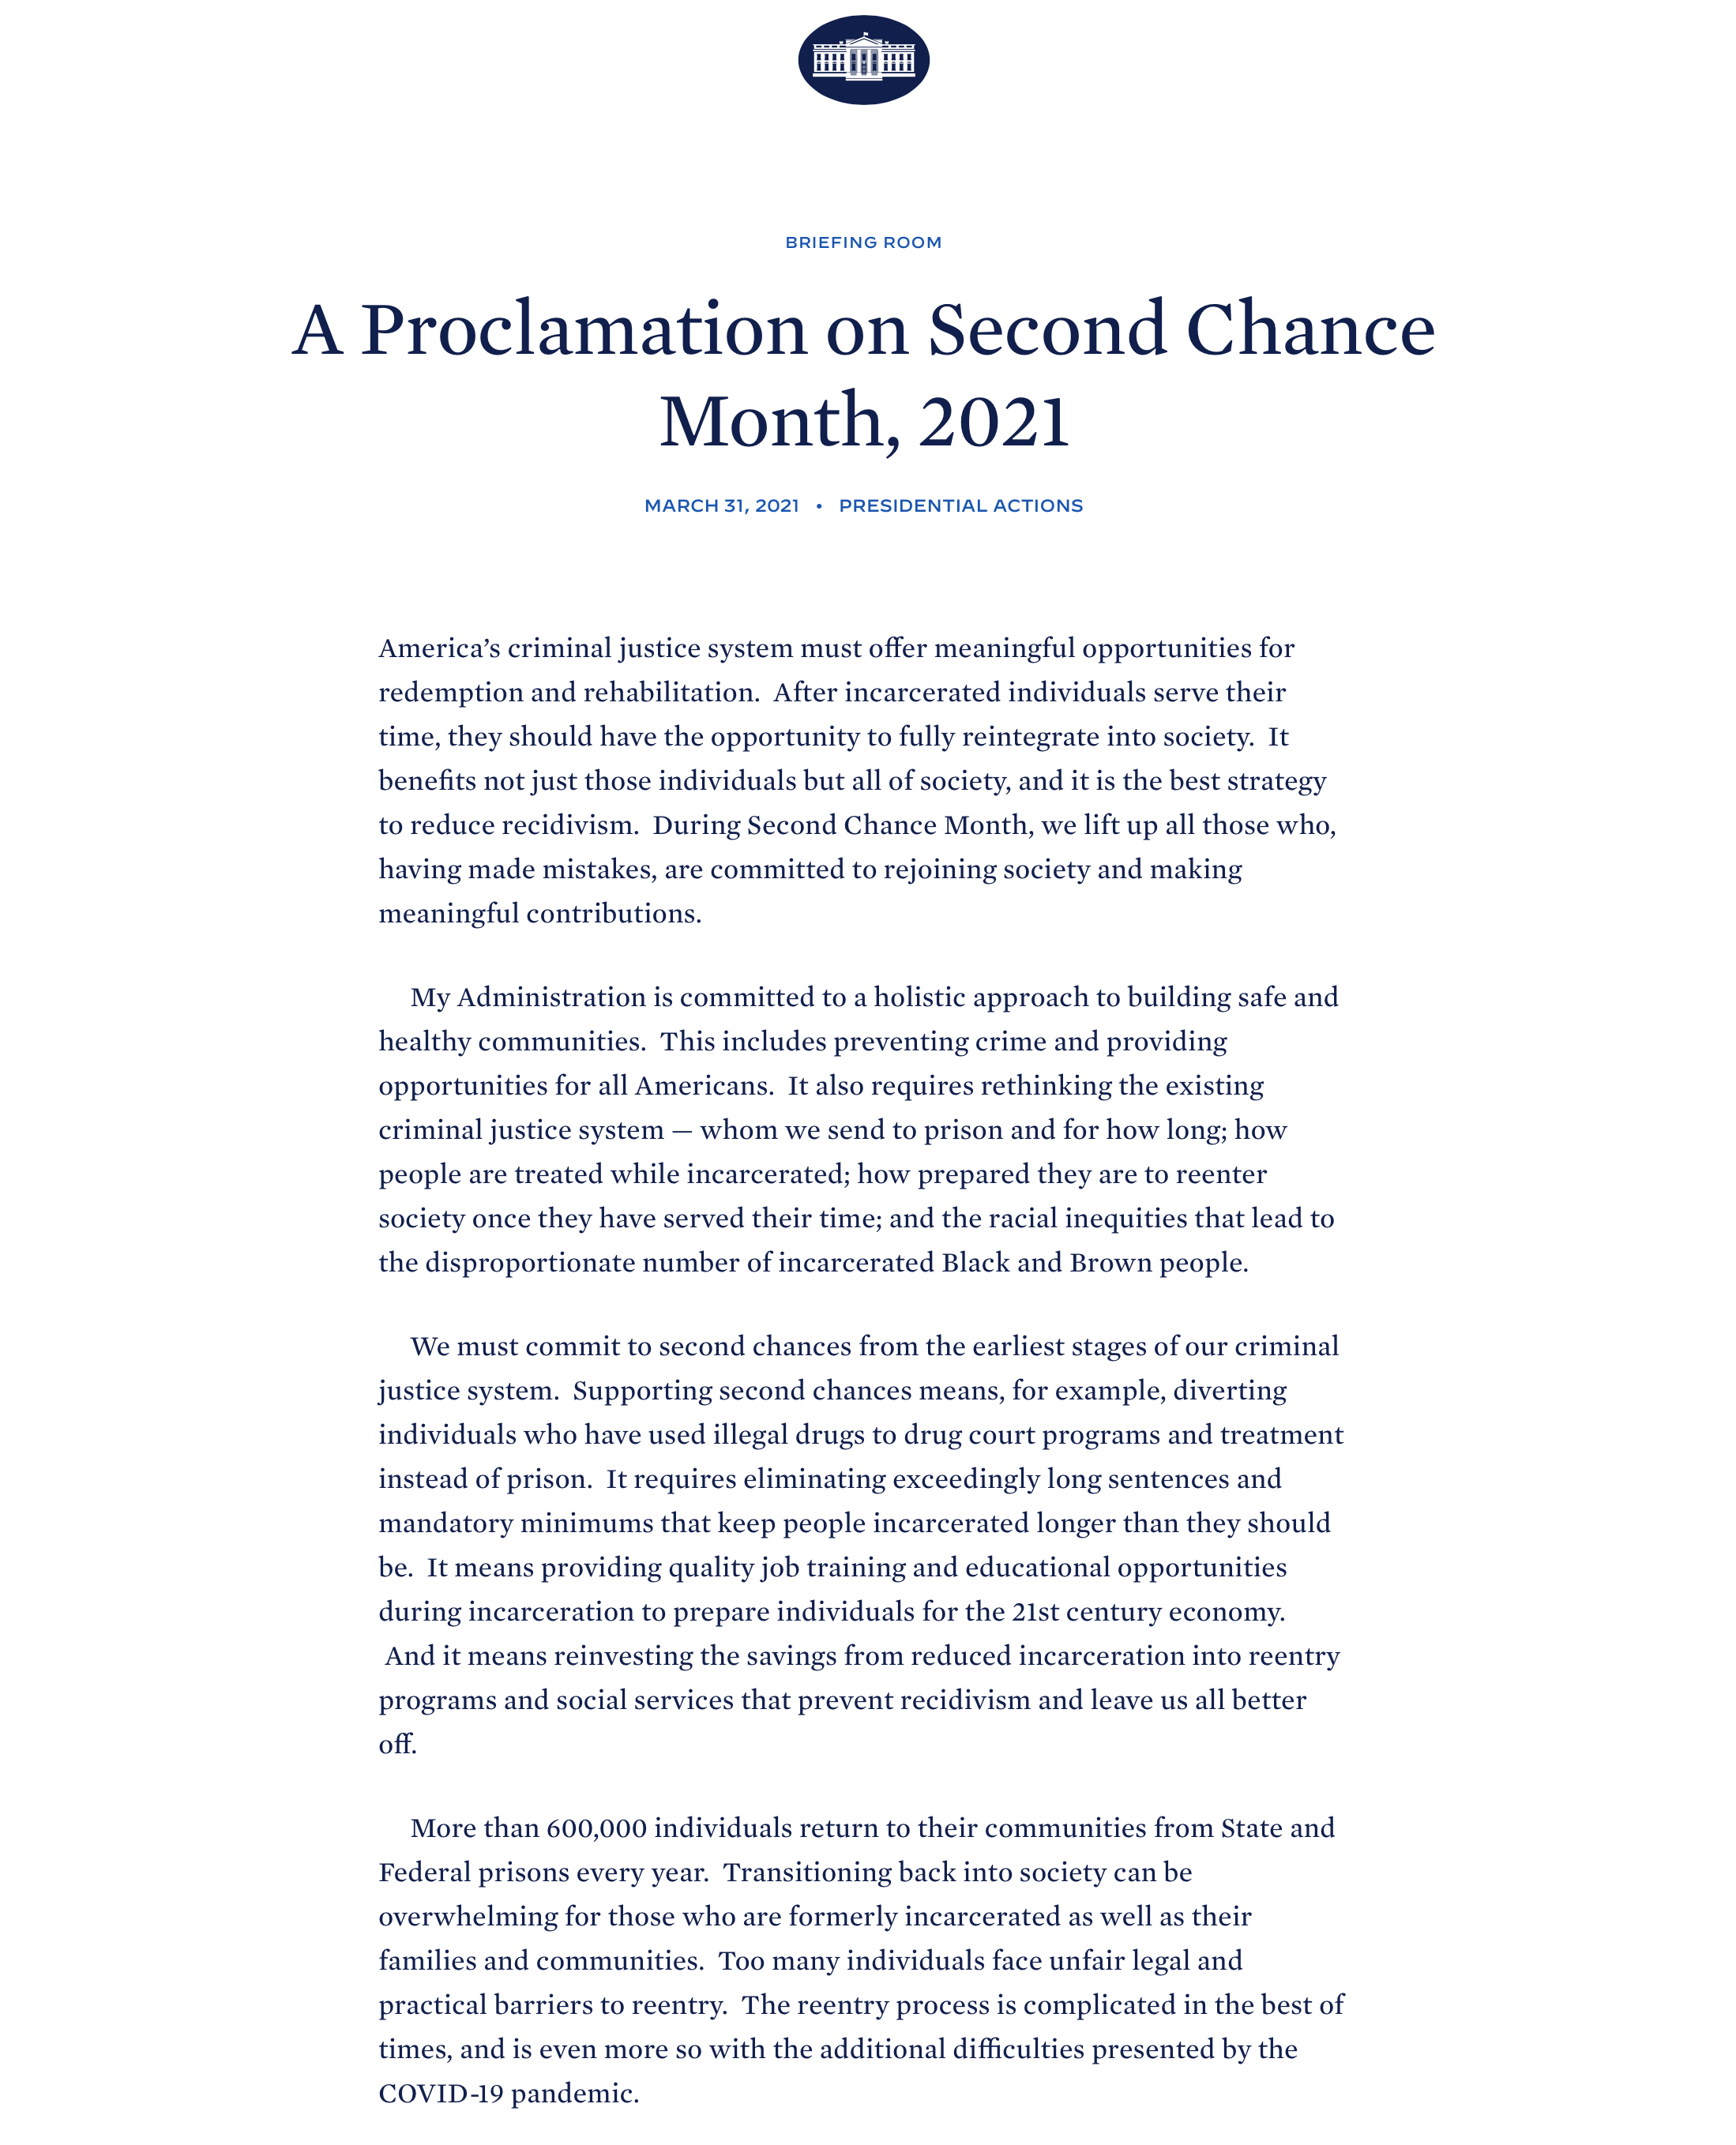 A Proclamation on Second Chance Month, 2021 screenshot